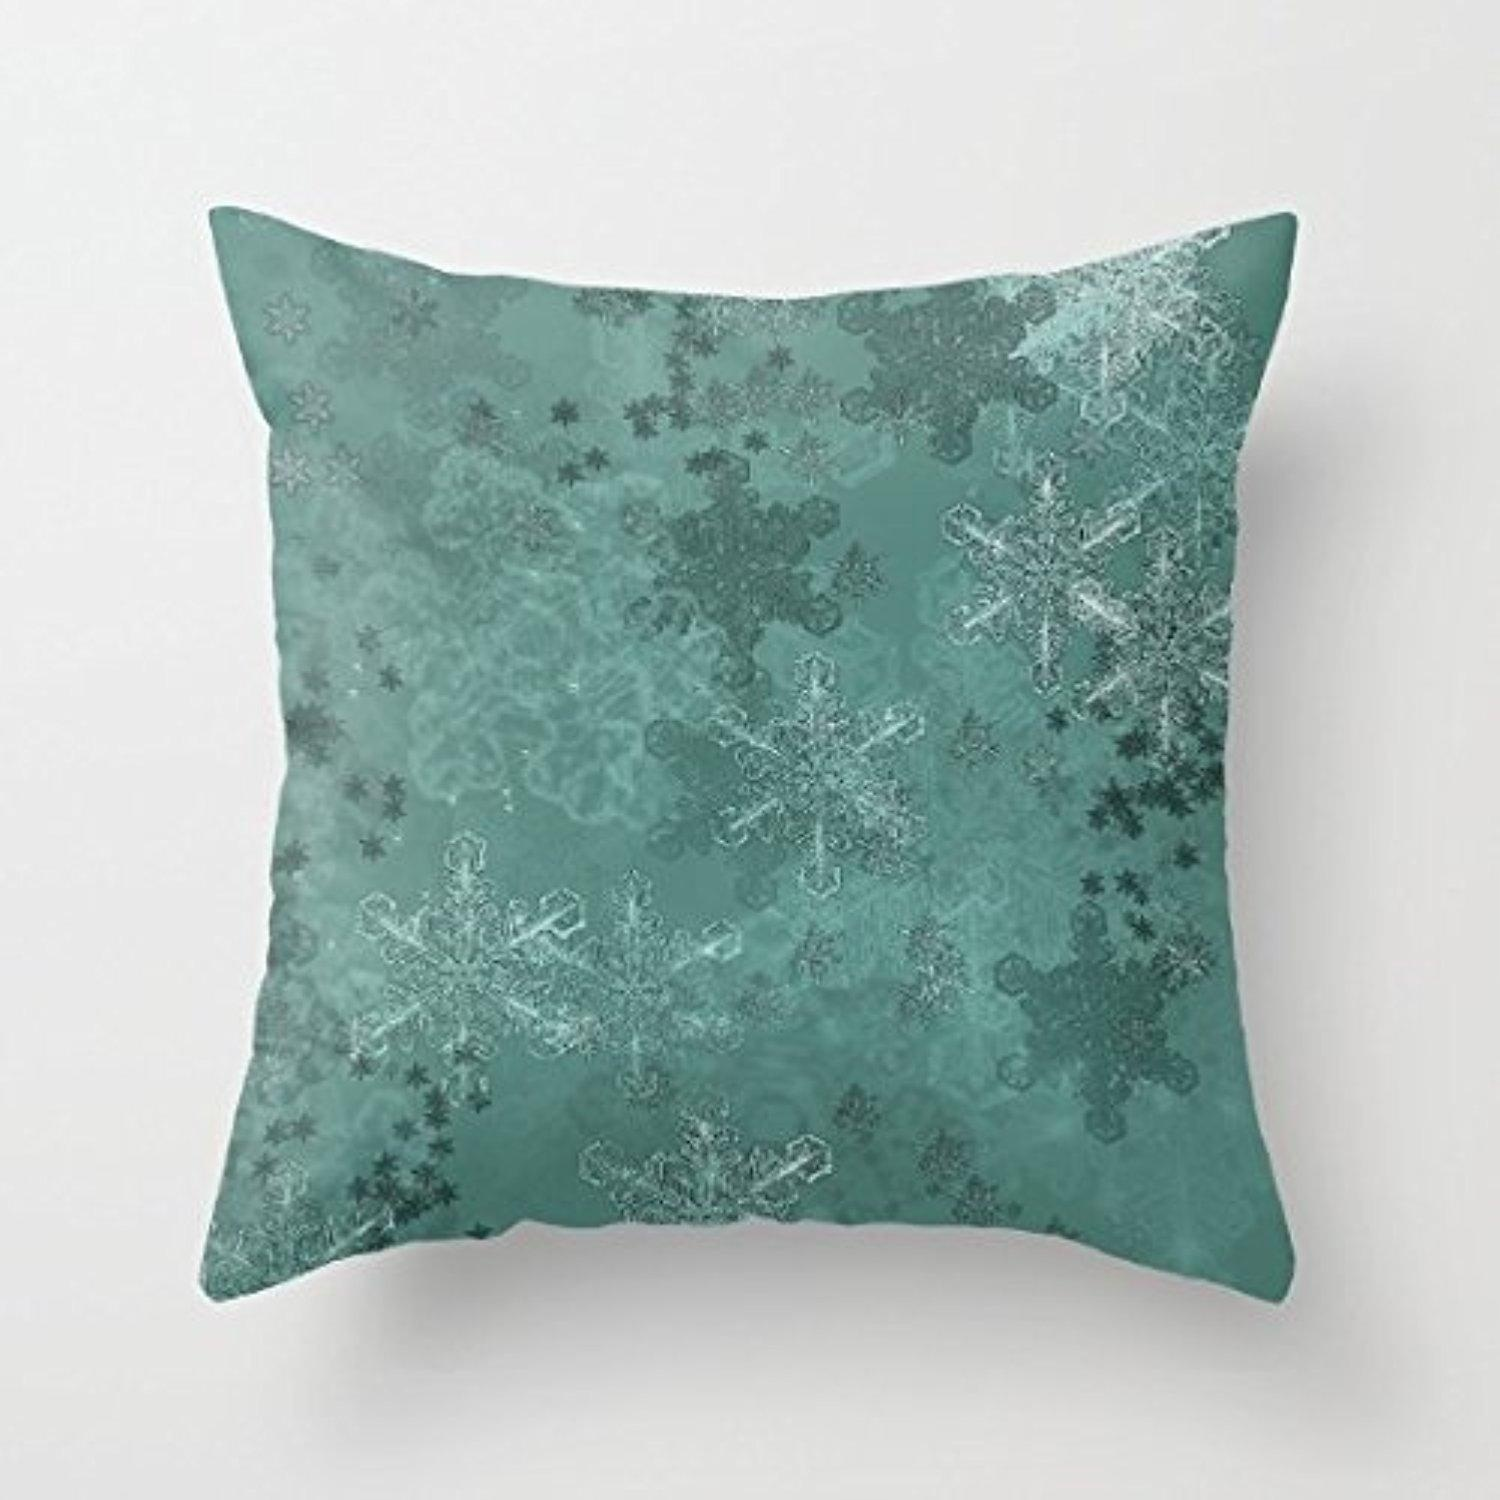 Bed Bath and Beyond Throw Pillows | Decorative Pillows Cheap | Decorative Pillow Covers